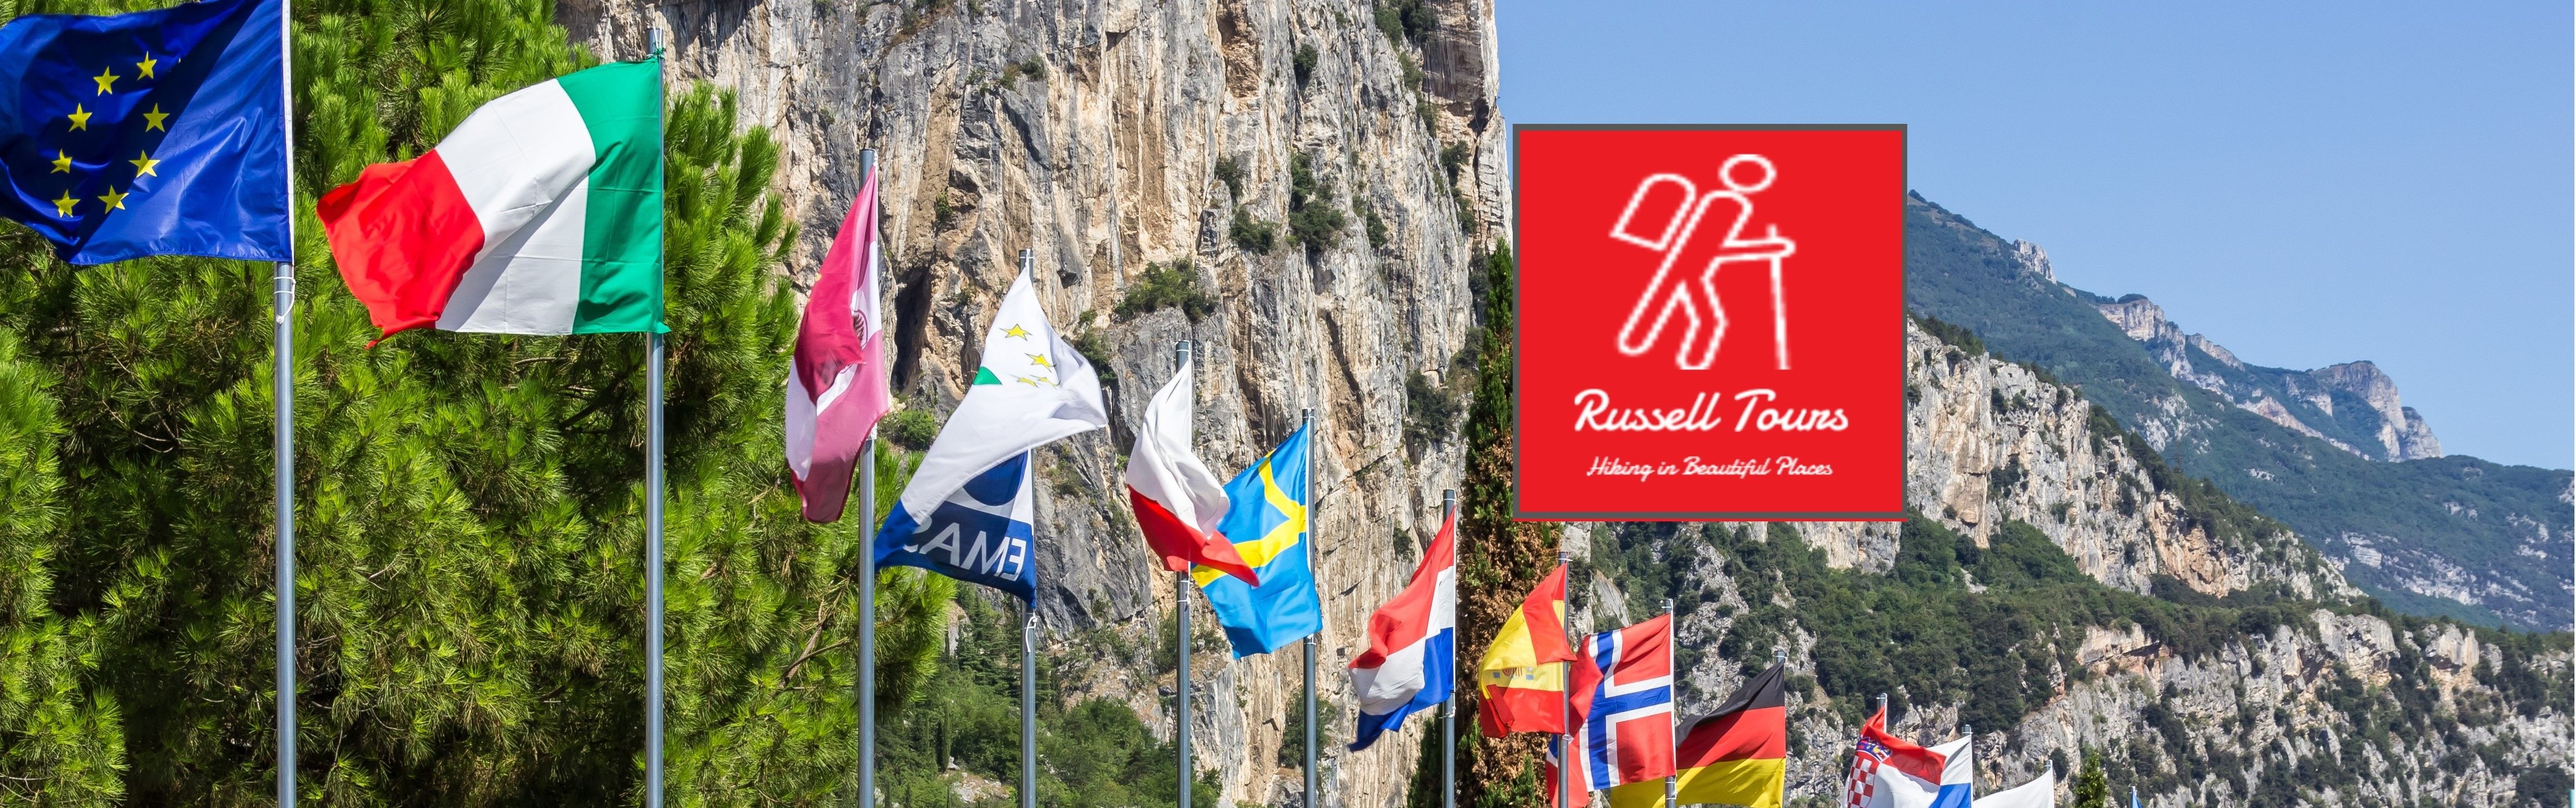 RussellTours Self Guided Hikes in Switzerland